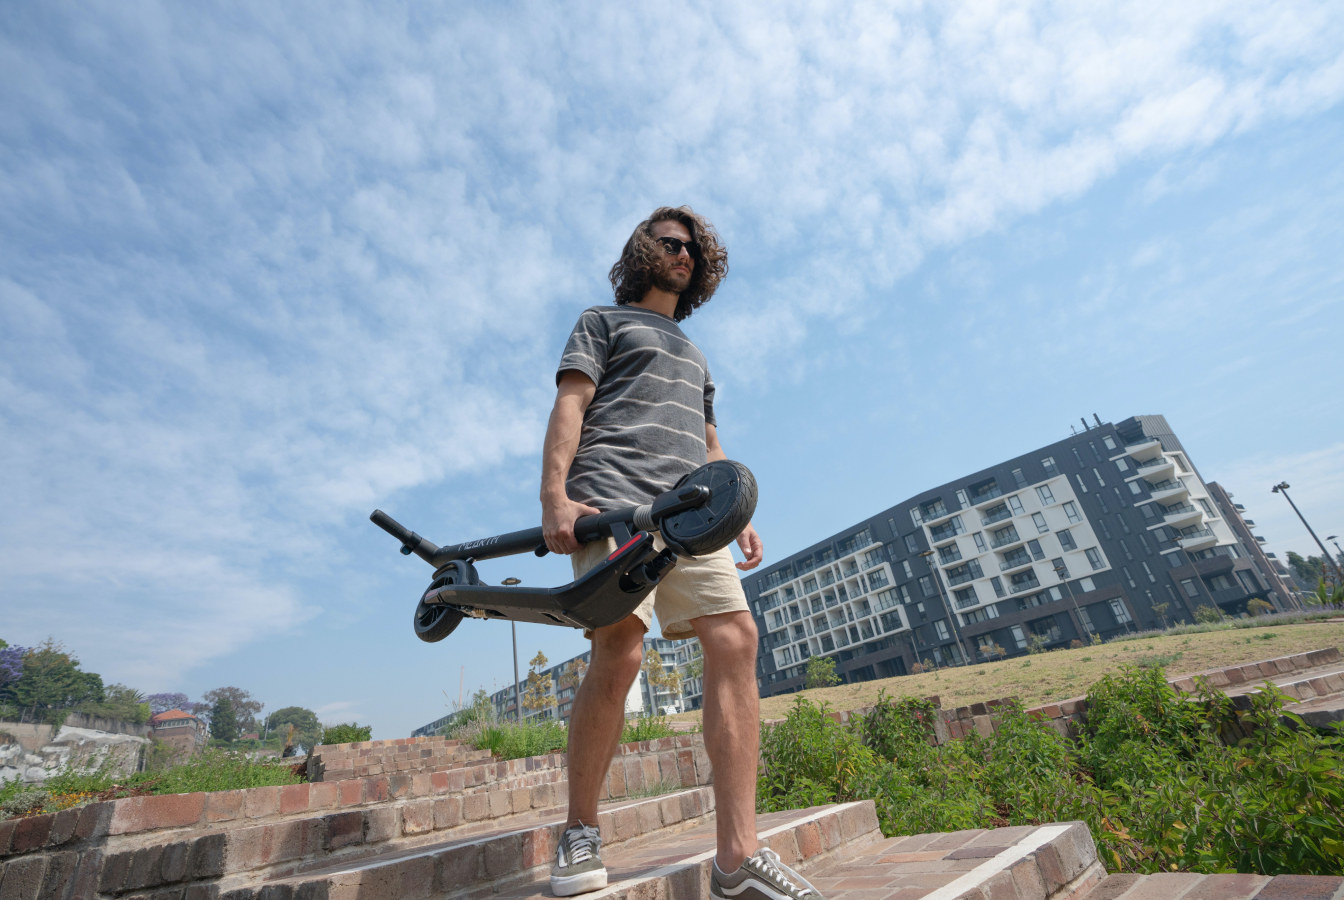 Man carrying electric standup scooter